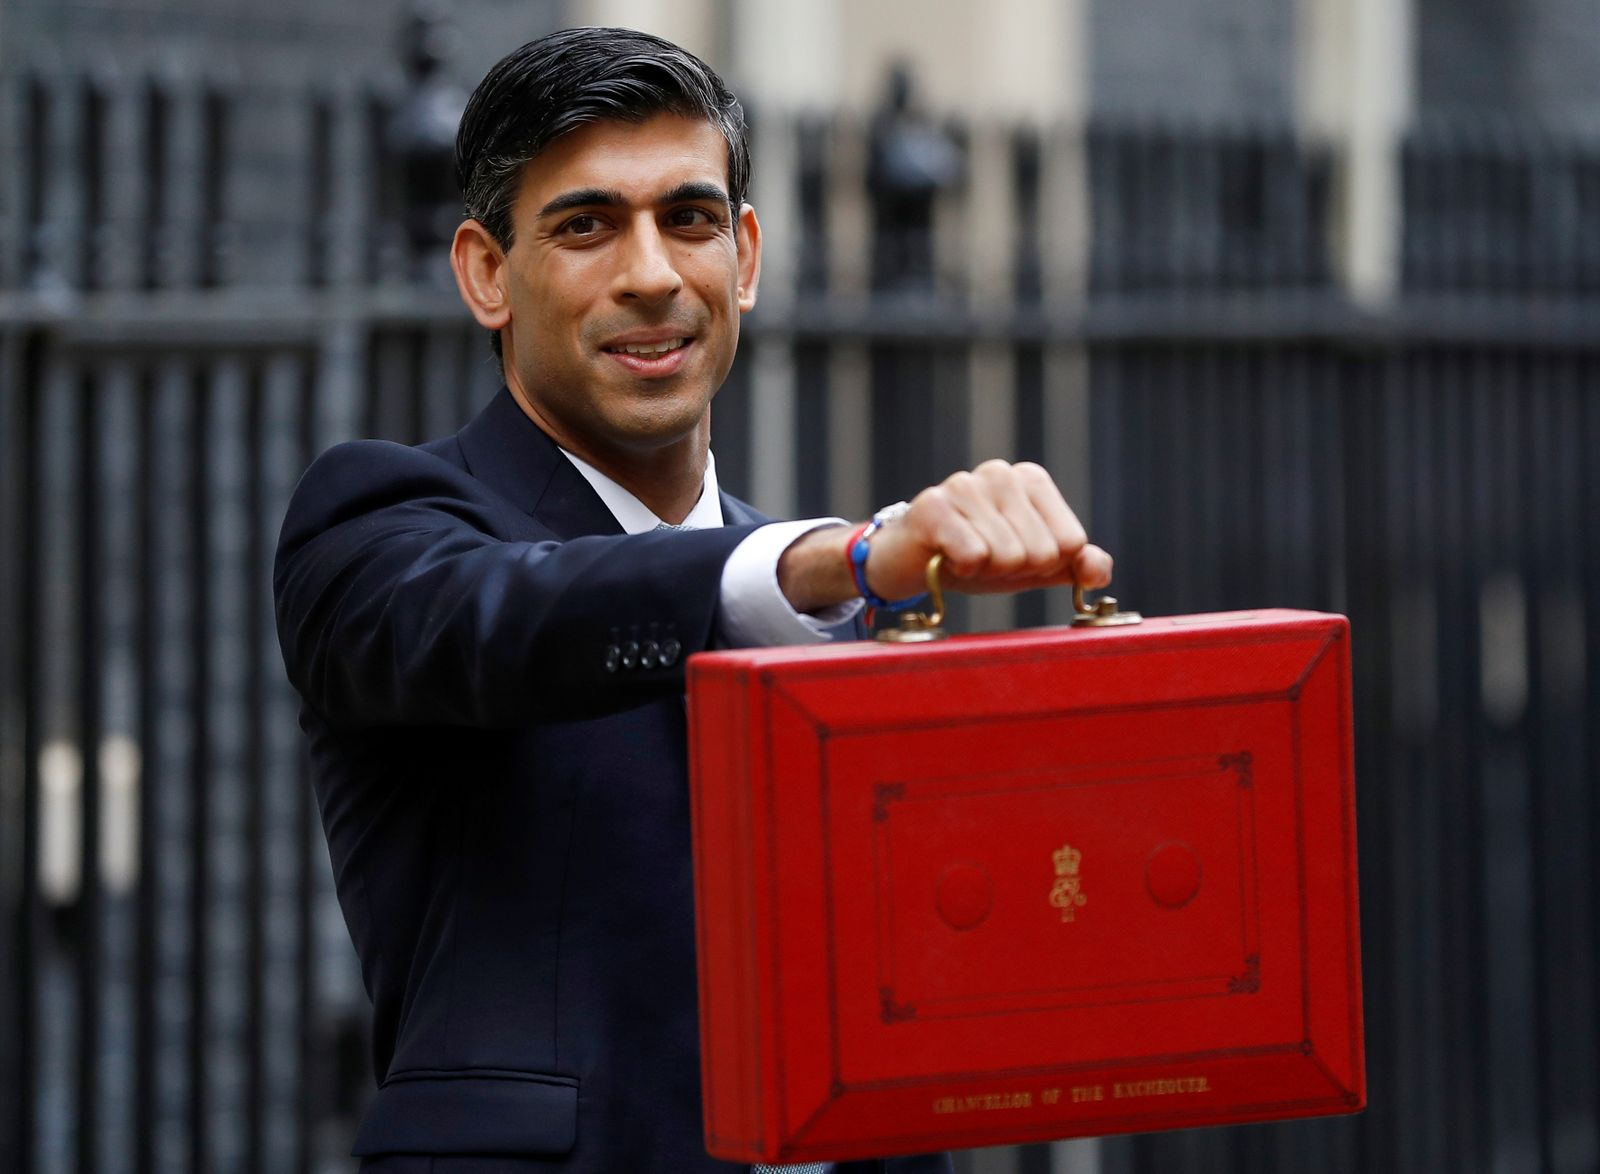 Britain's Chancellor of the Exchequer Rishi Sunak holds the budget box outside his office in Downing Street in London